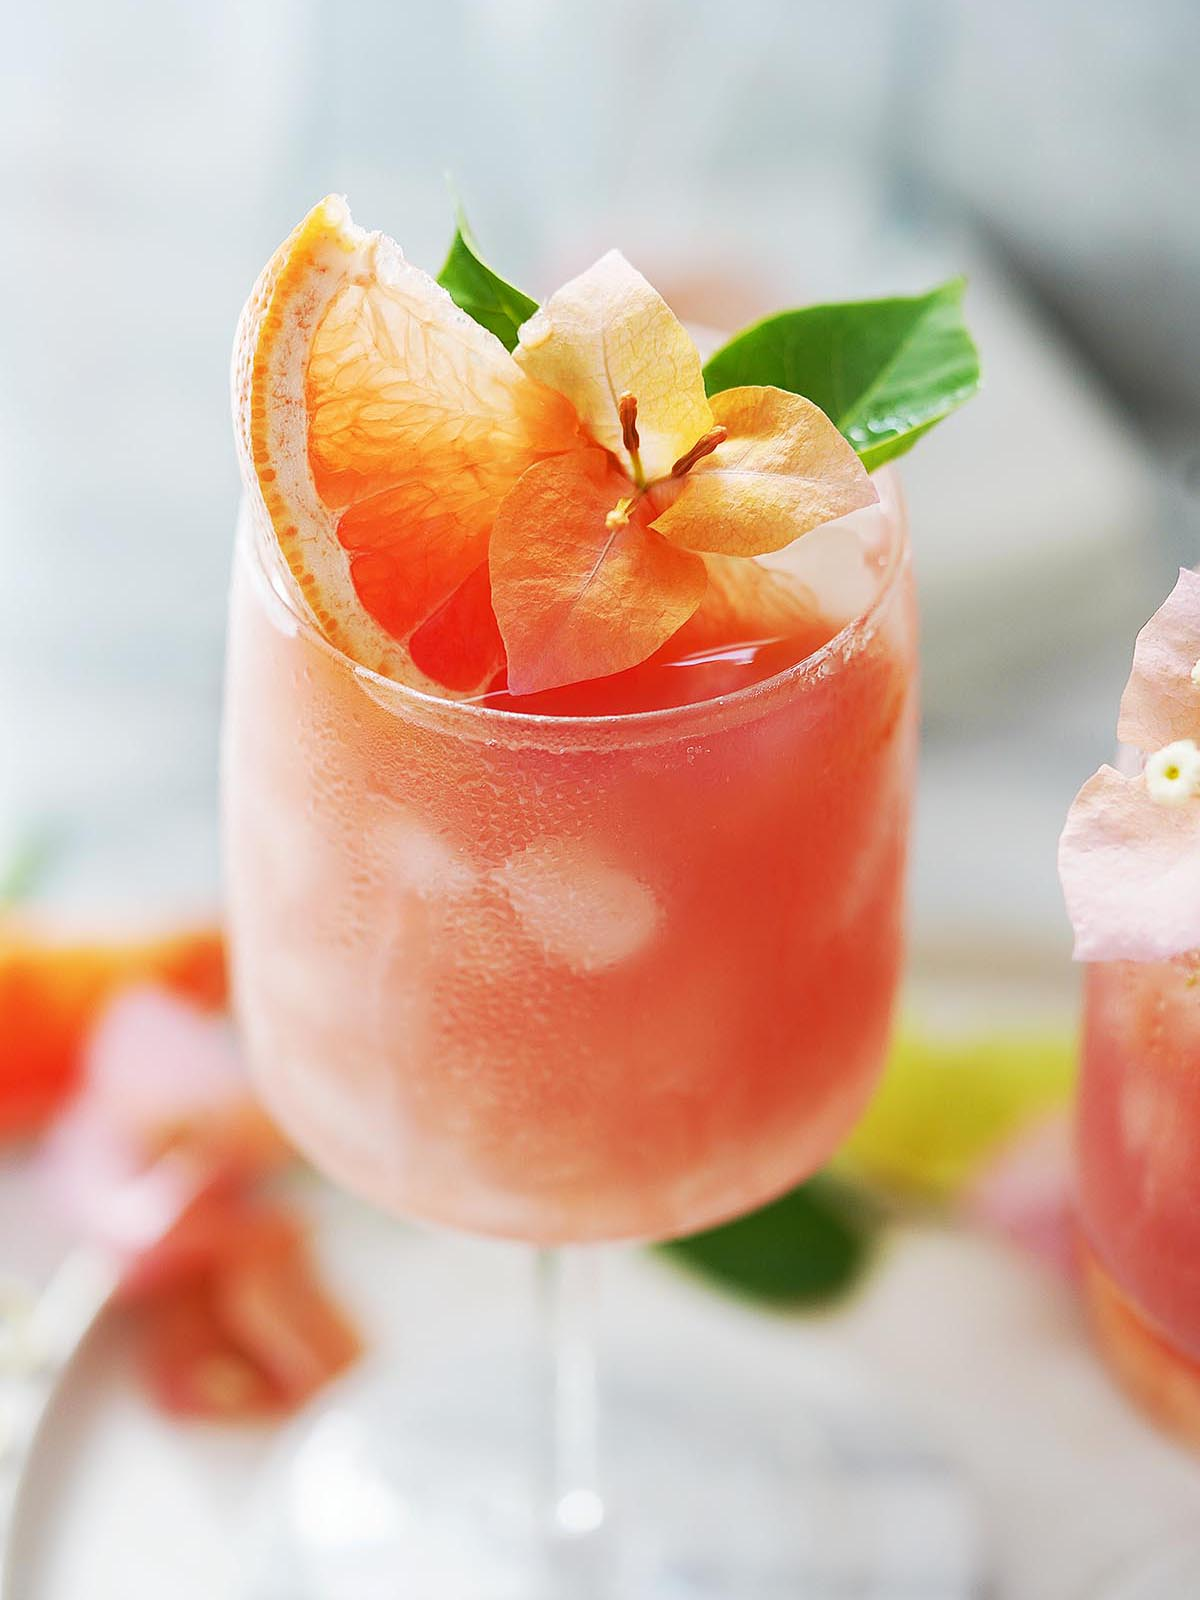 A Paloma cocktail garnished with grapefruit and an orange flower.